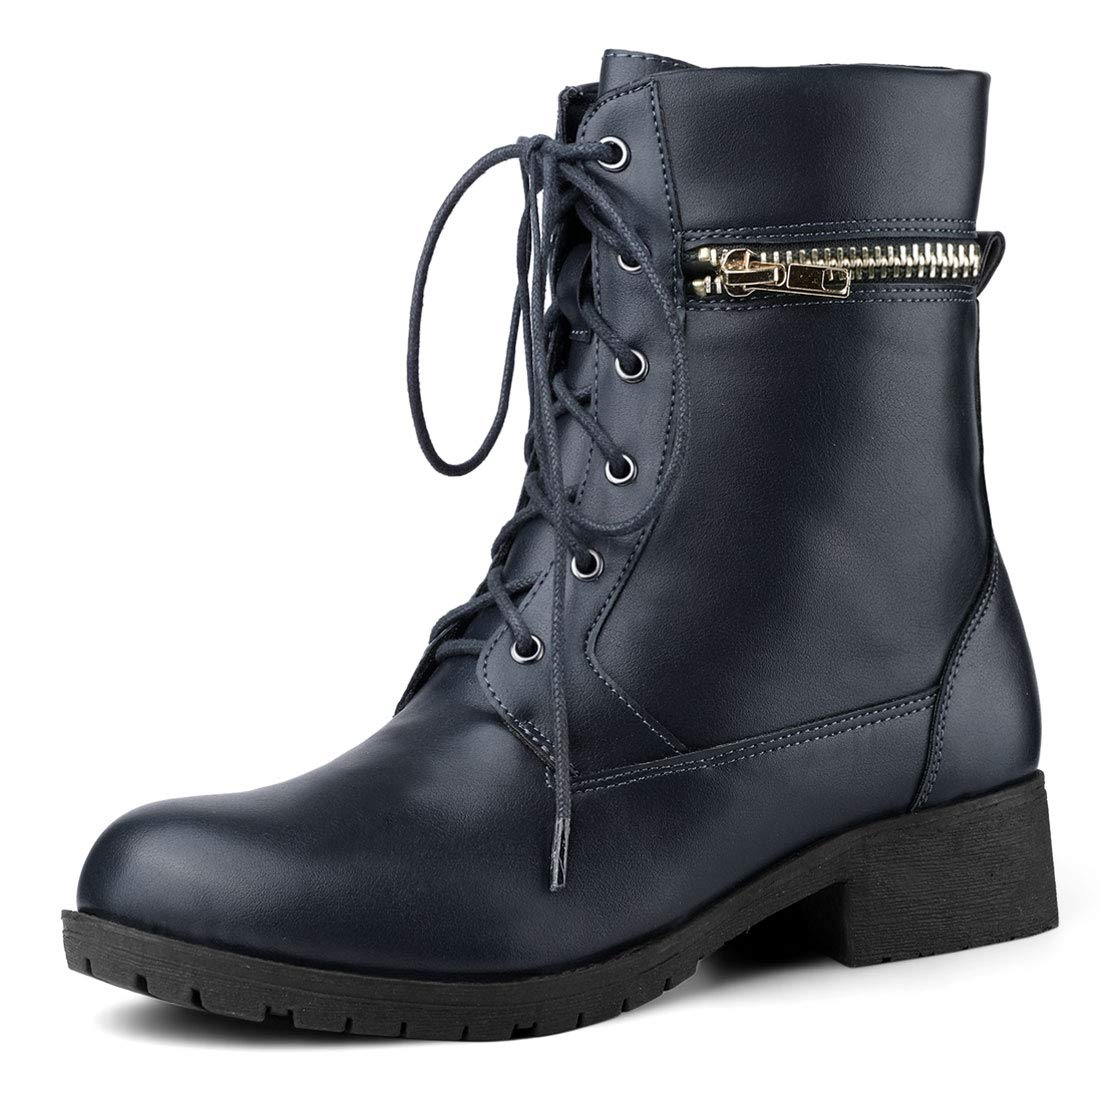 Allegra K Womens Christmas Lace Up Combat Boots